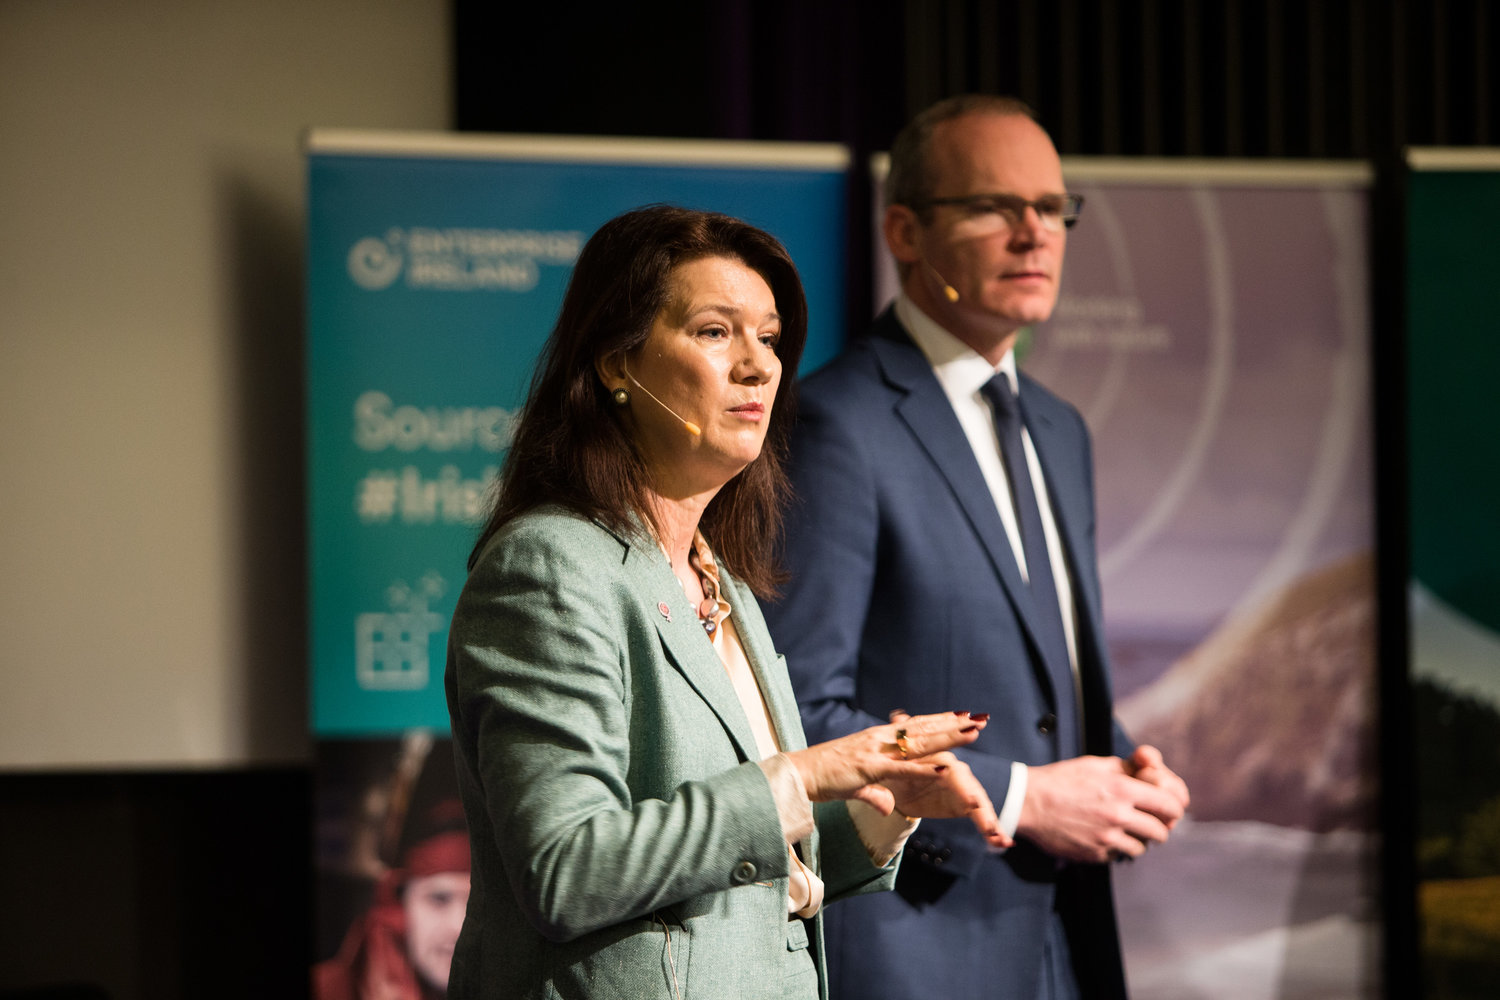 Ireland's Deputy Prime Minister and Minister for Foreign Affairs  Simon Coveney  and Sweden's Minister for European Union Affairs and Trade  Ann Linde  at the inaugural event organised by the Irish Chamber of Commerce in Sweden. The event theme was Brexit and the implications for business. Click on the image for more.